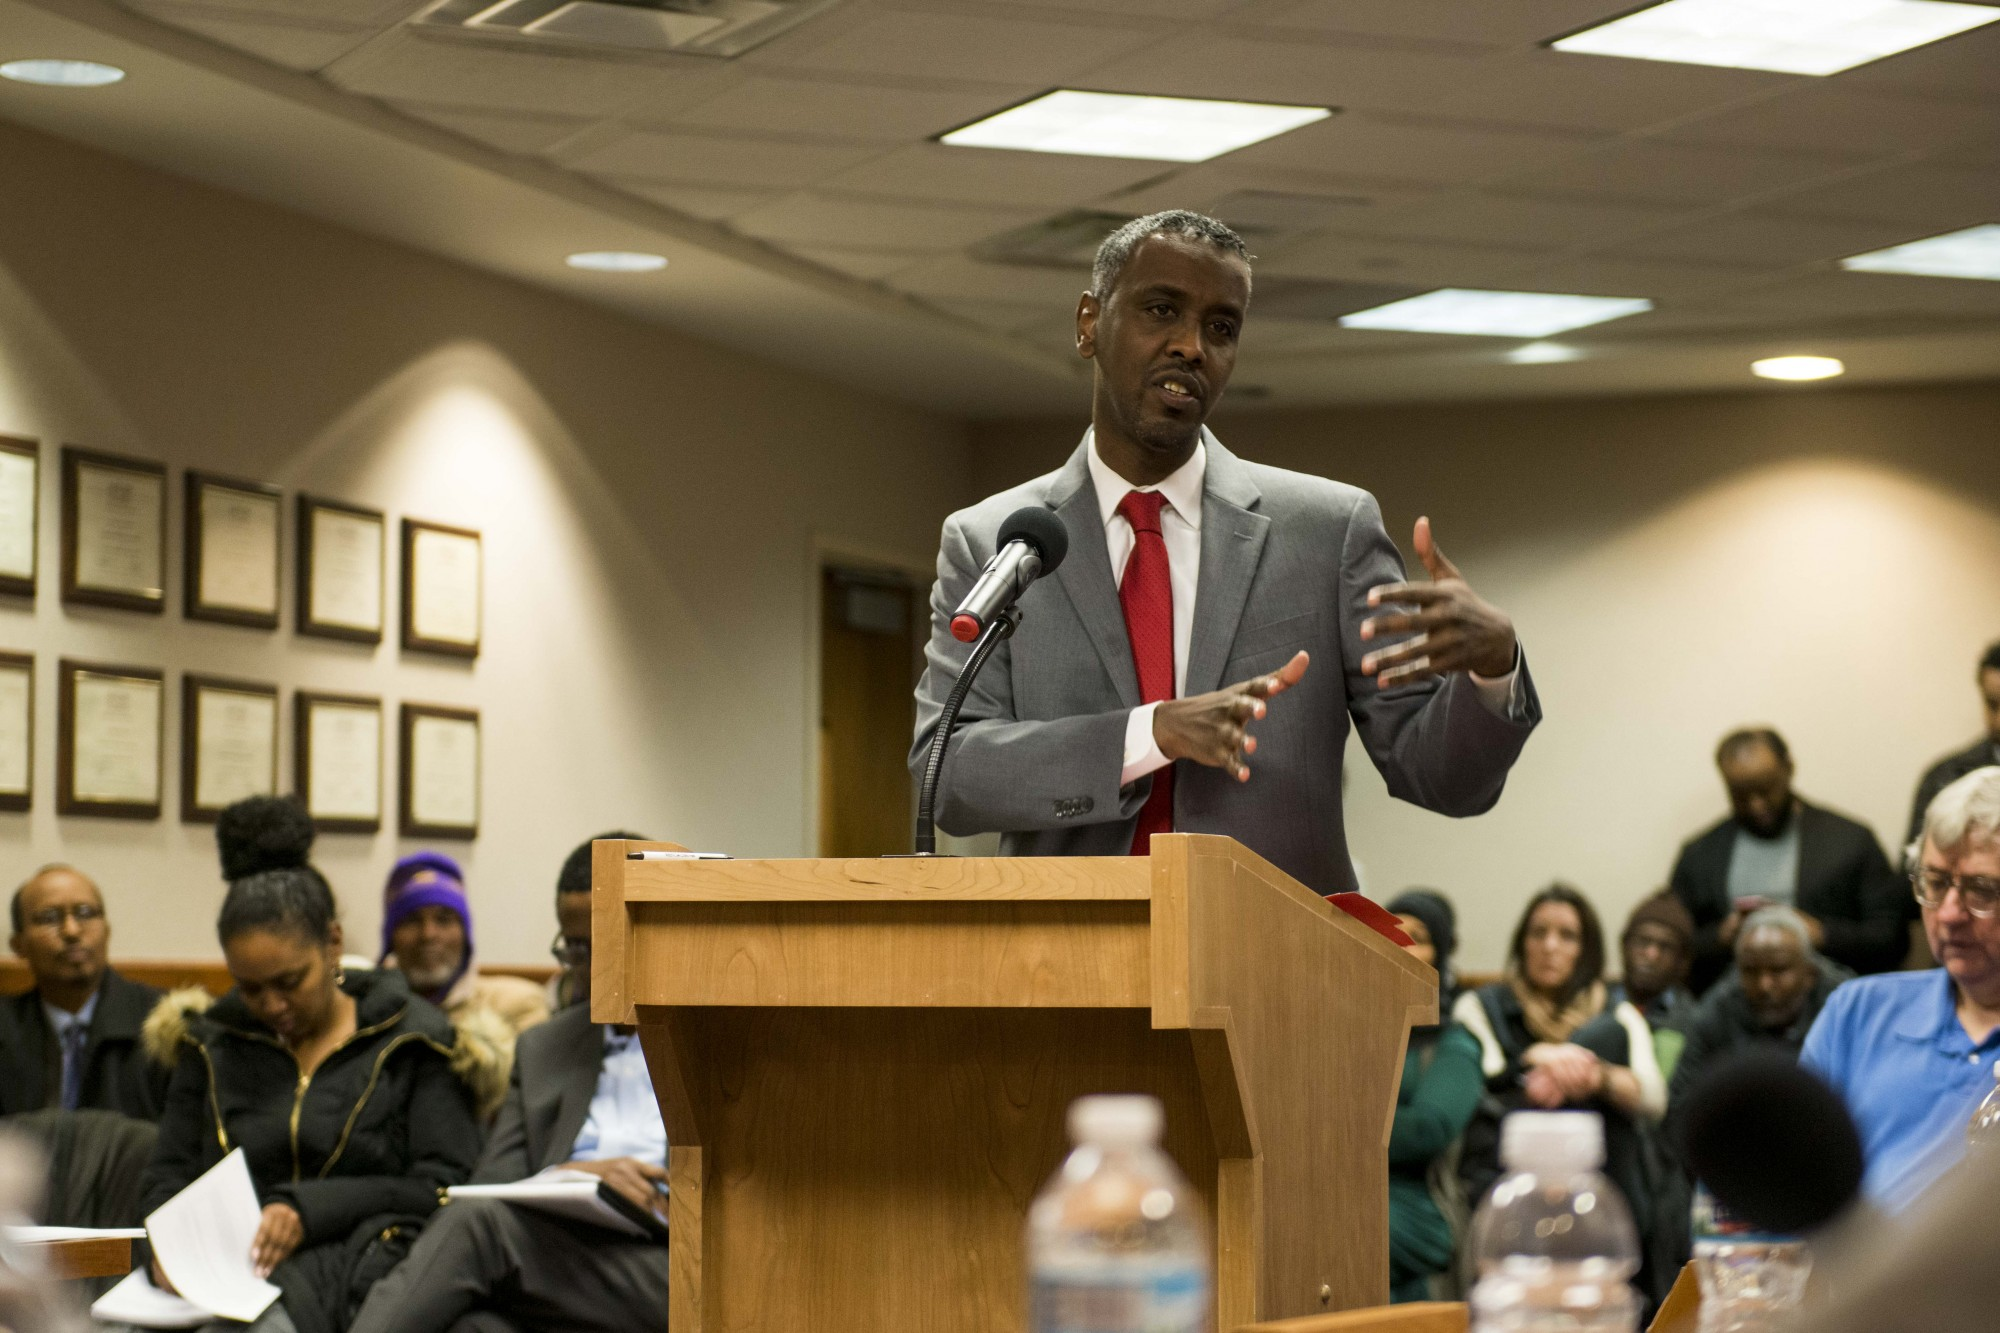 Minneapolis City Council Member Abdi Warsame addresses the Minneapolis Public Housing Authority on Wednesday, Jan. 29. Warsame was selected as the next executive director and CEO for the MPHA.